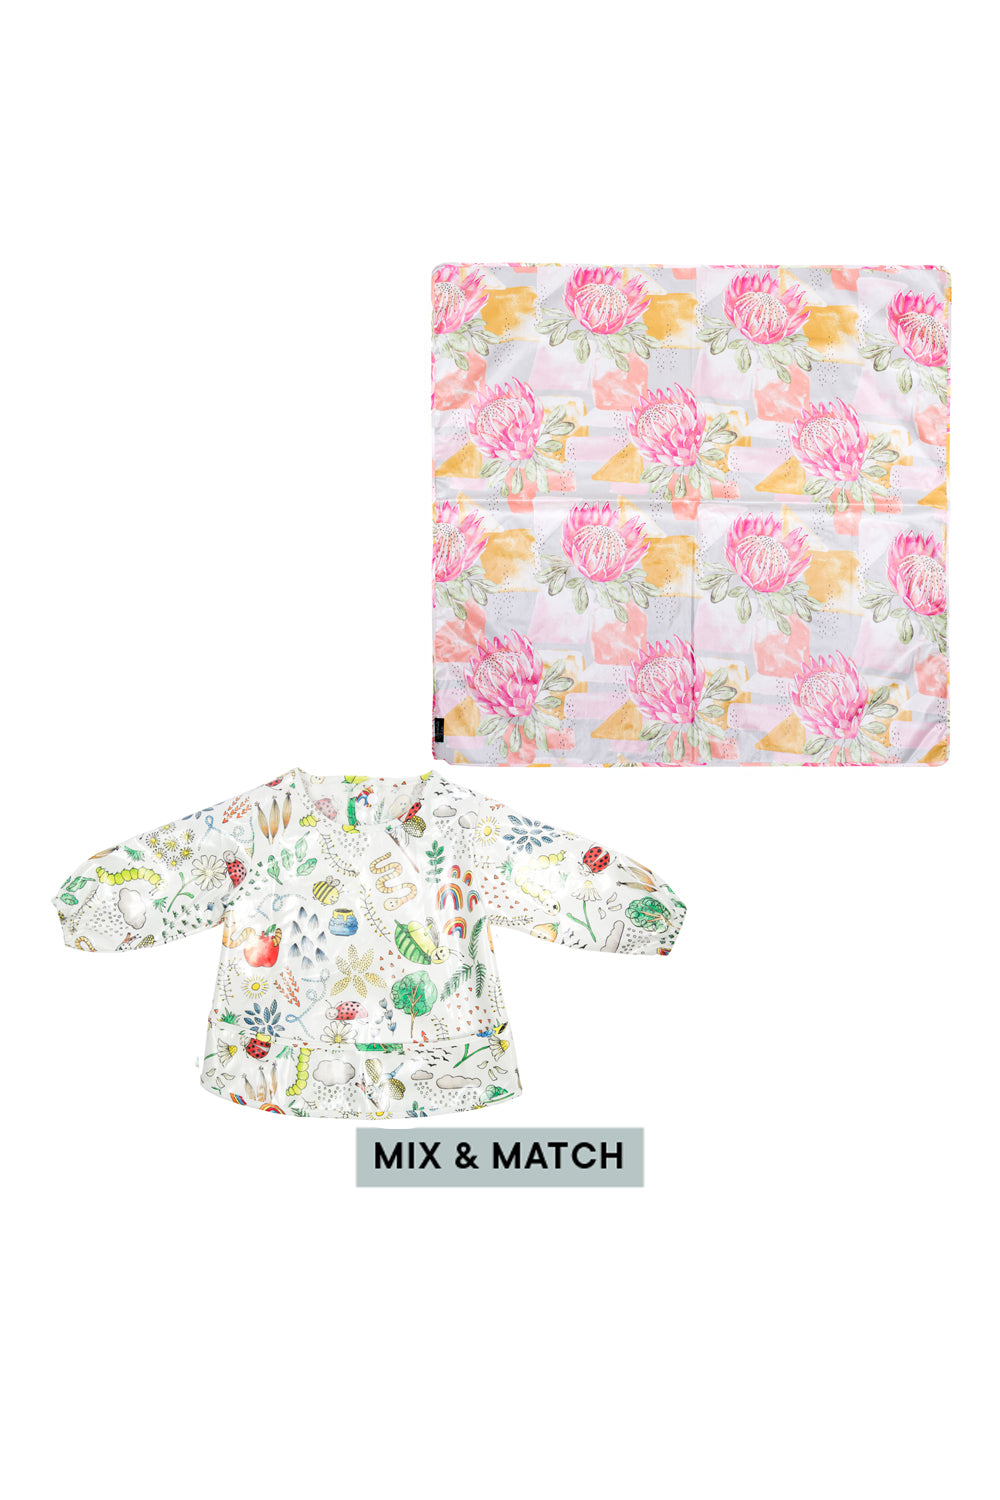 Long Sleeve Feeding Bib & Splat Mat (Save £5)